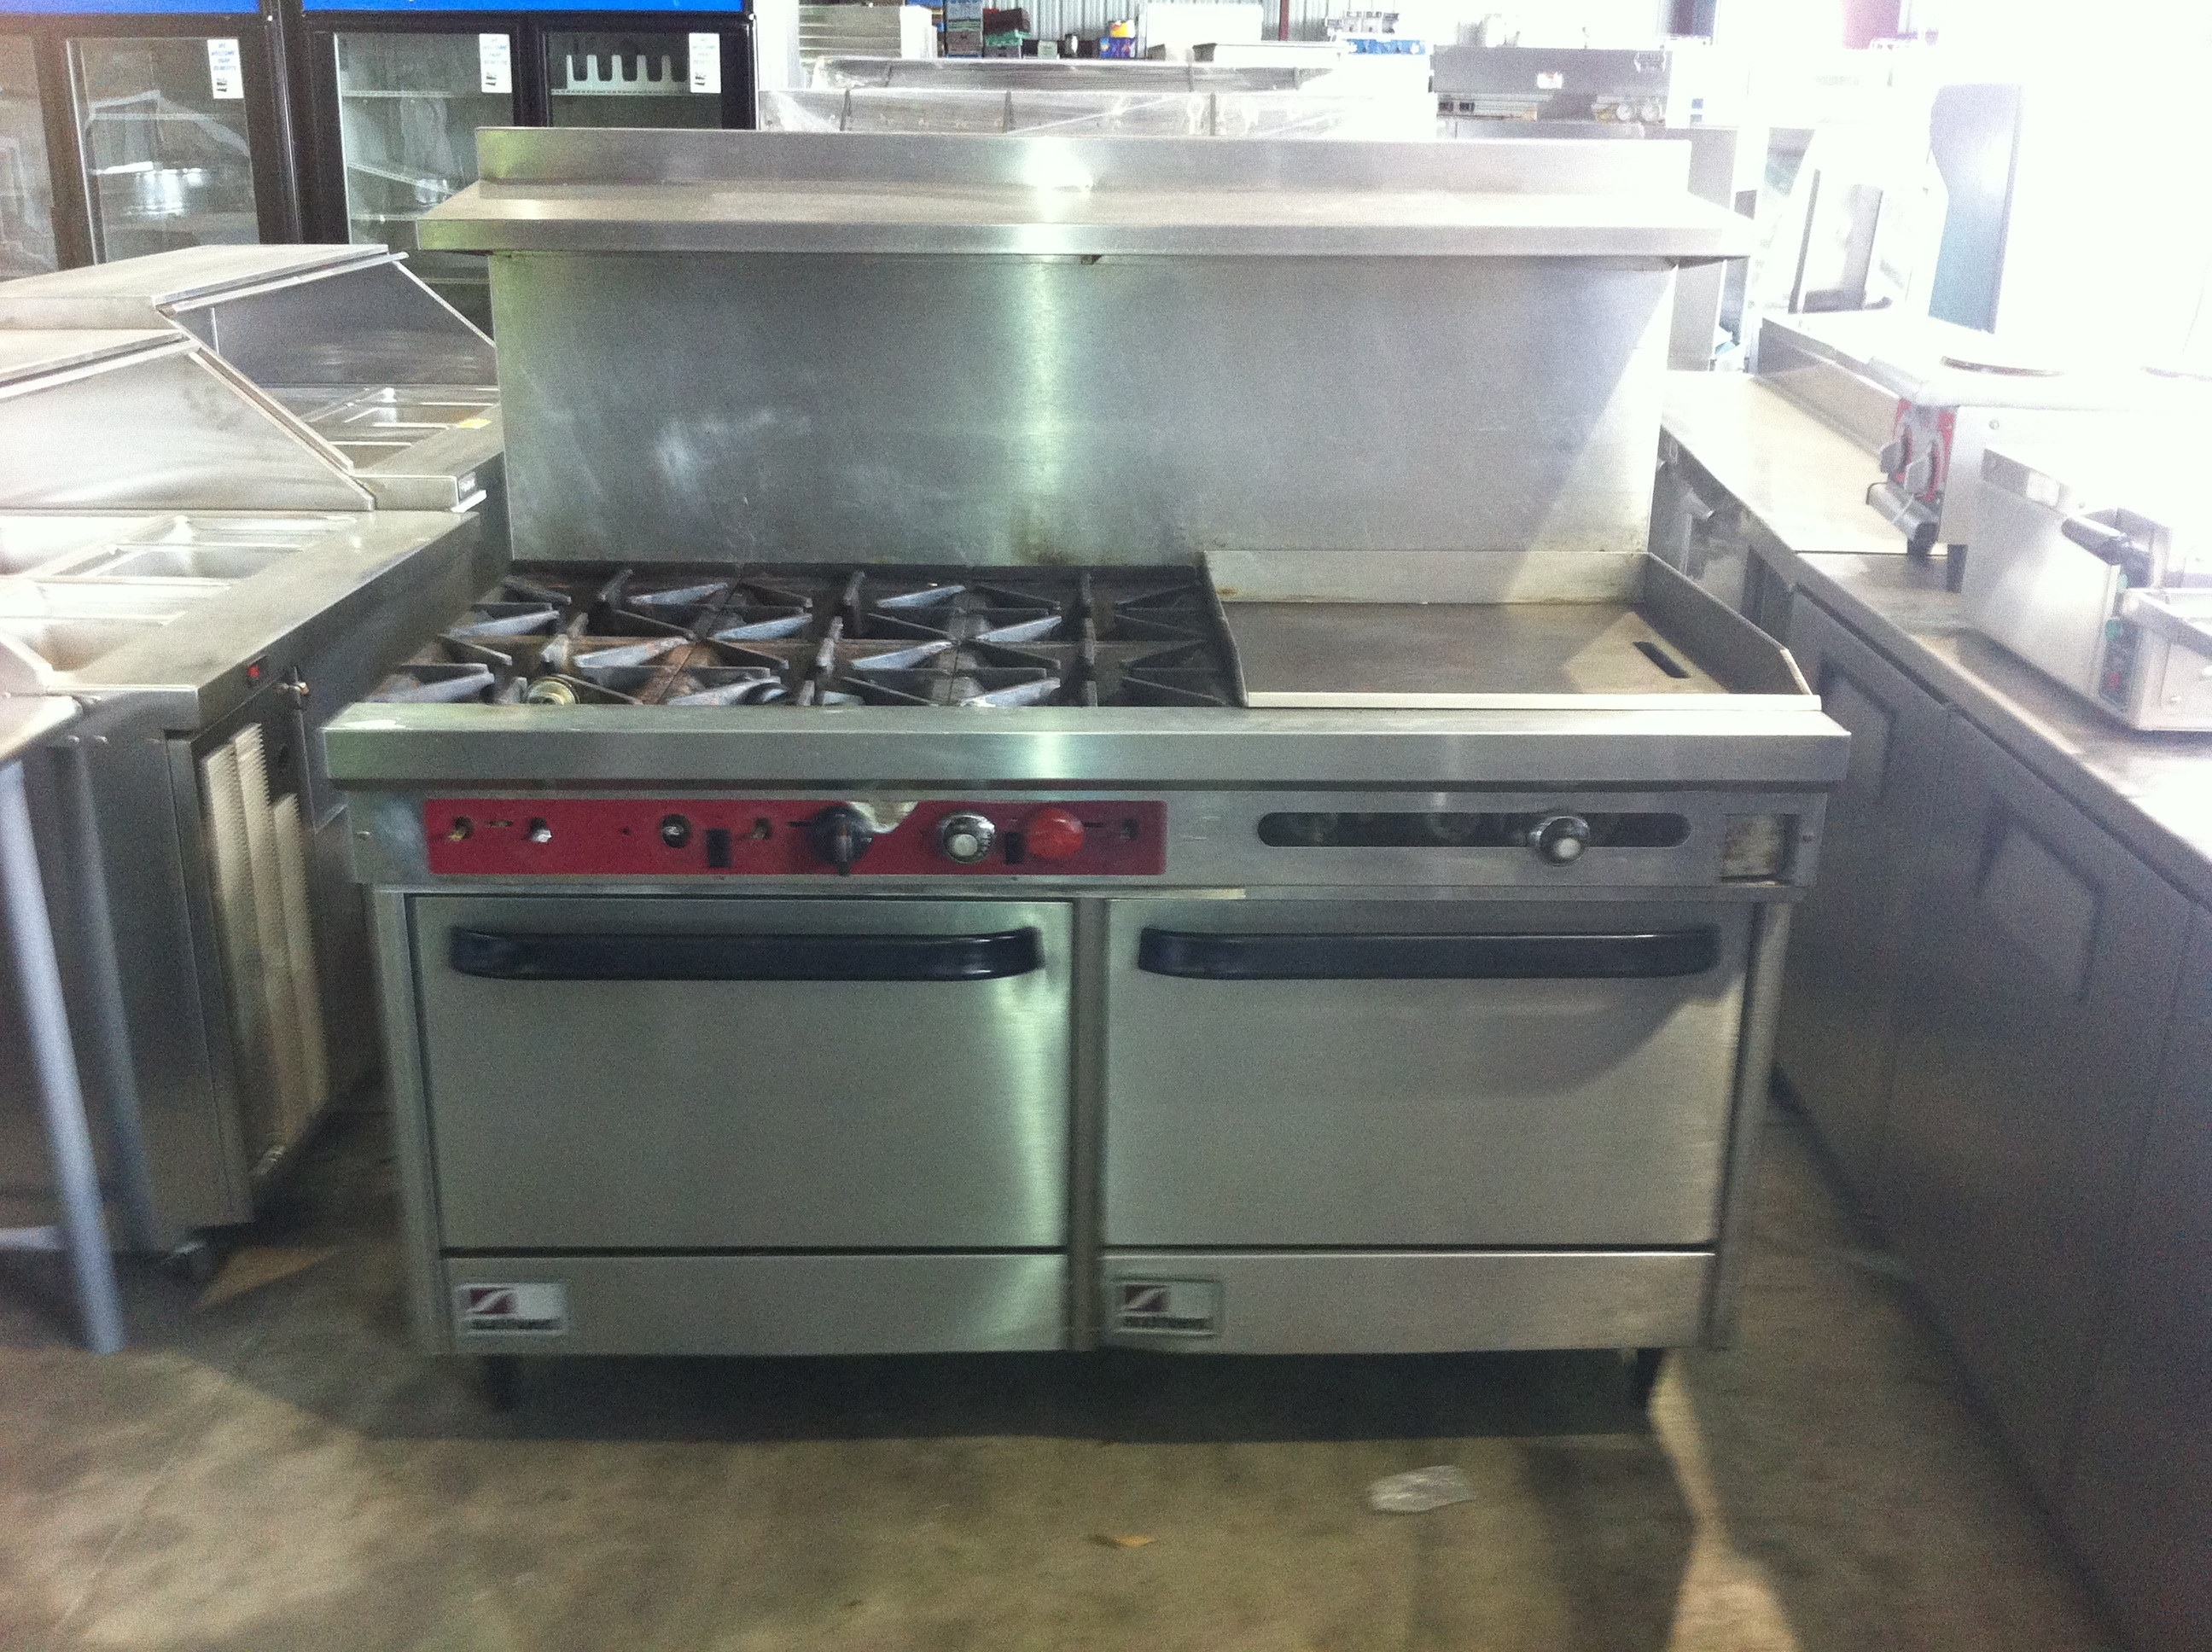 Southbend 6 burner double range oven with 24 flat griddle for Equipement cuisine restaurant